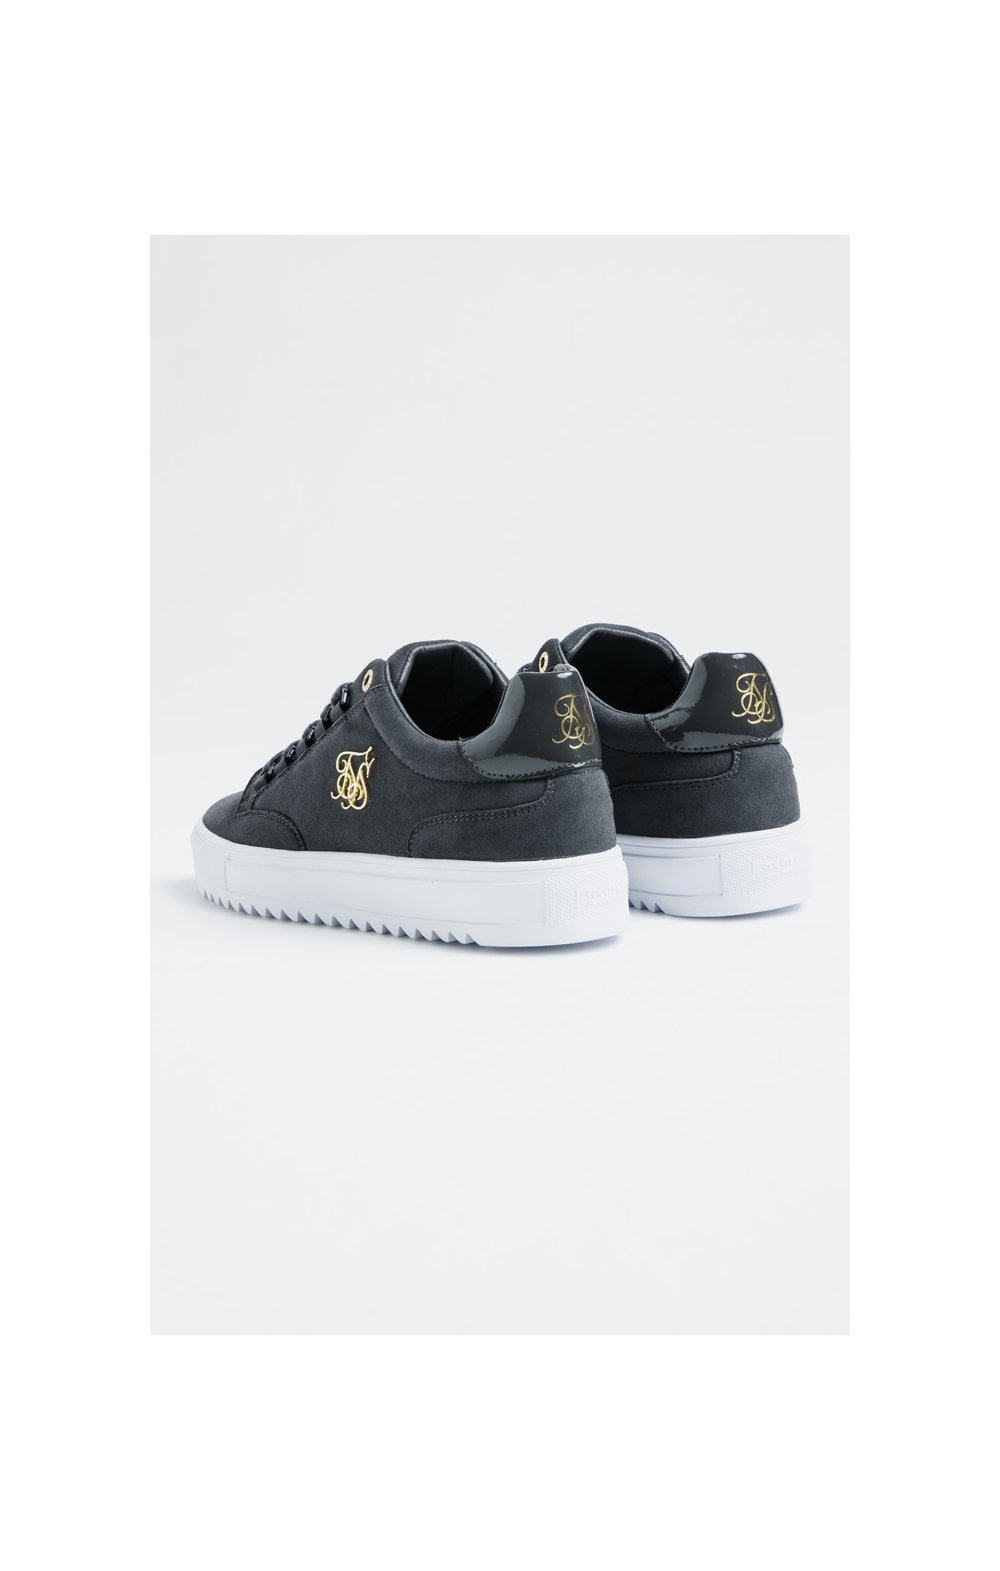 SikSilk Element Anaconda Chaussures Baskets en Suède - Gris (2)